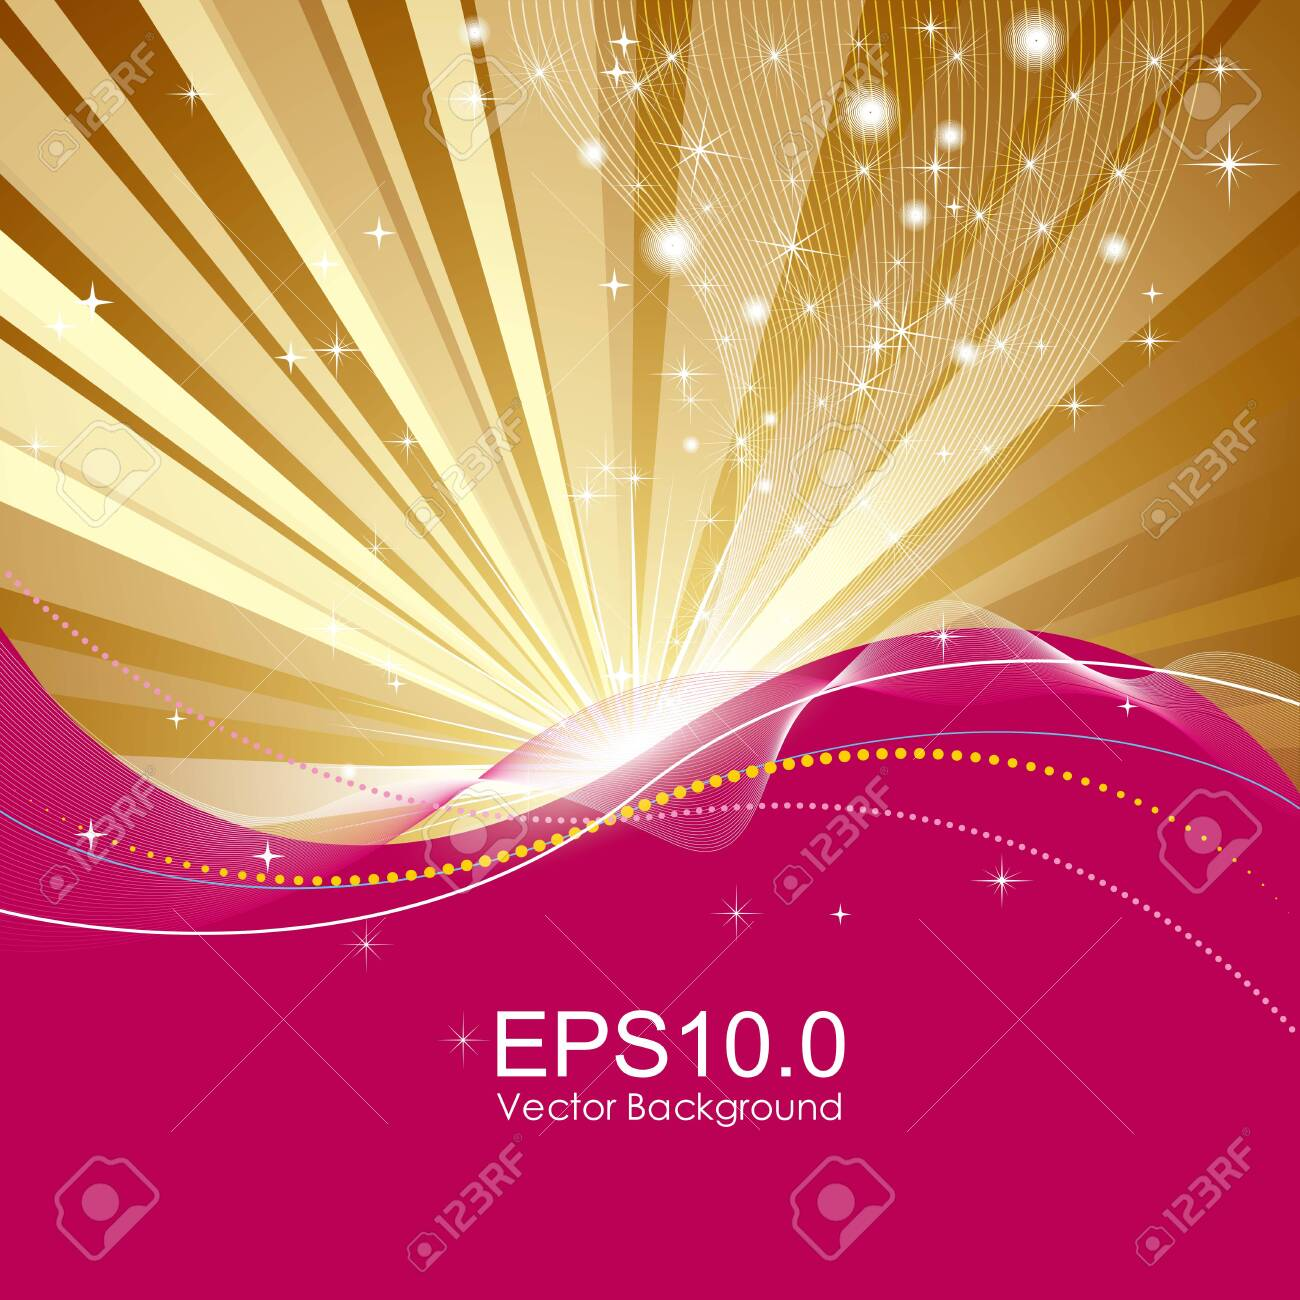 Abstract background design. The background is golden radial. - 131432214